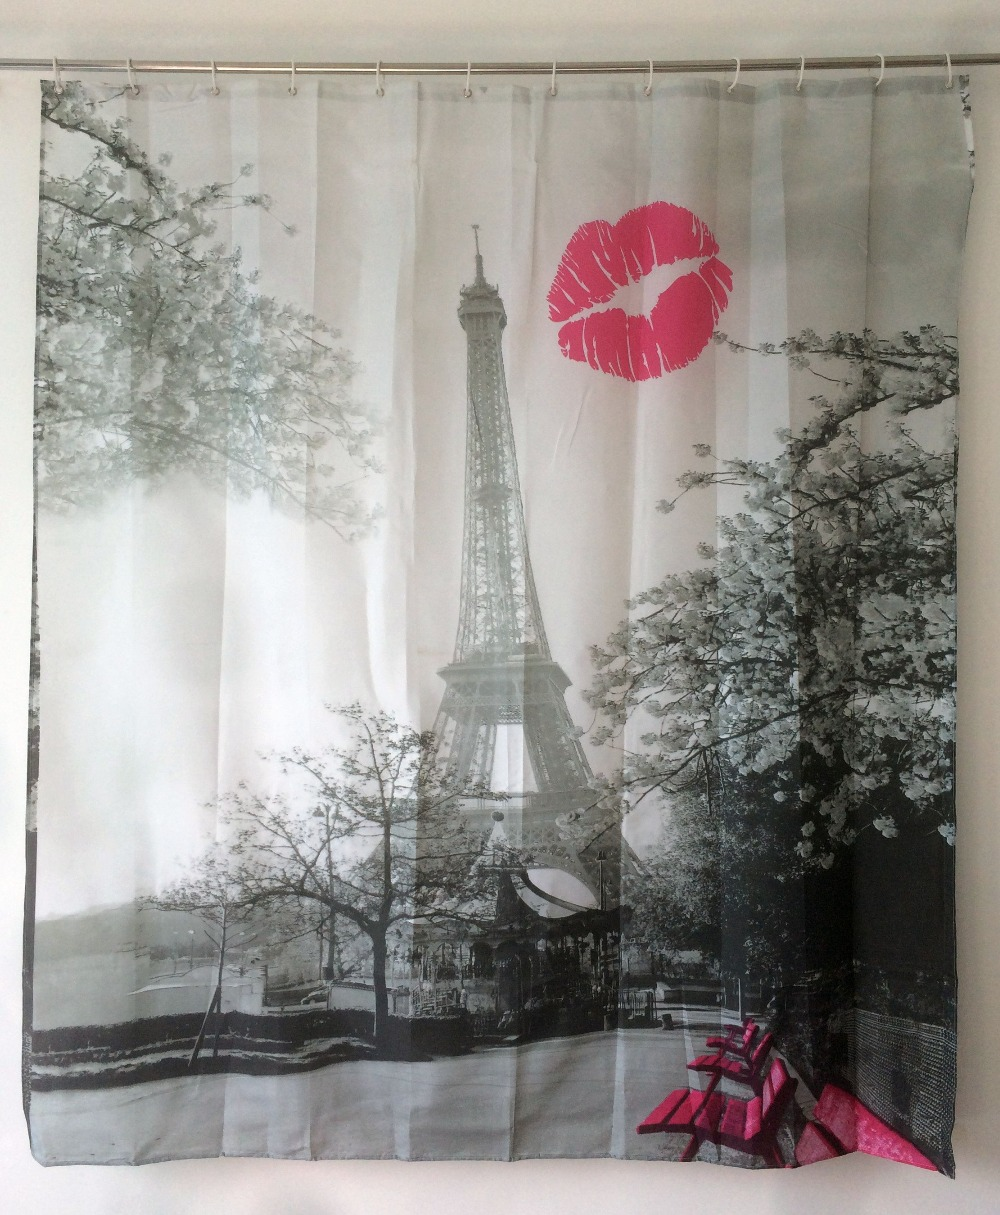 Red Lip Eiffel Shower Curtain Tower Pattern Bathroom Curtain Waterproof Polyester Fabric With 12 Hooks Cortina Ducha